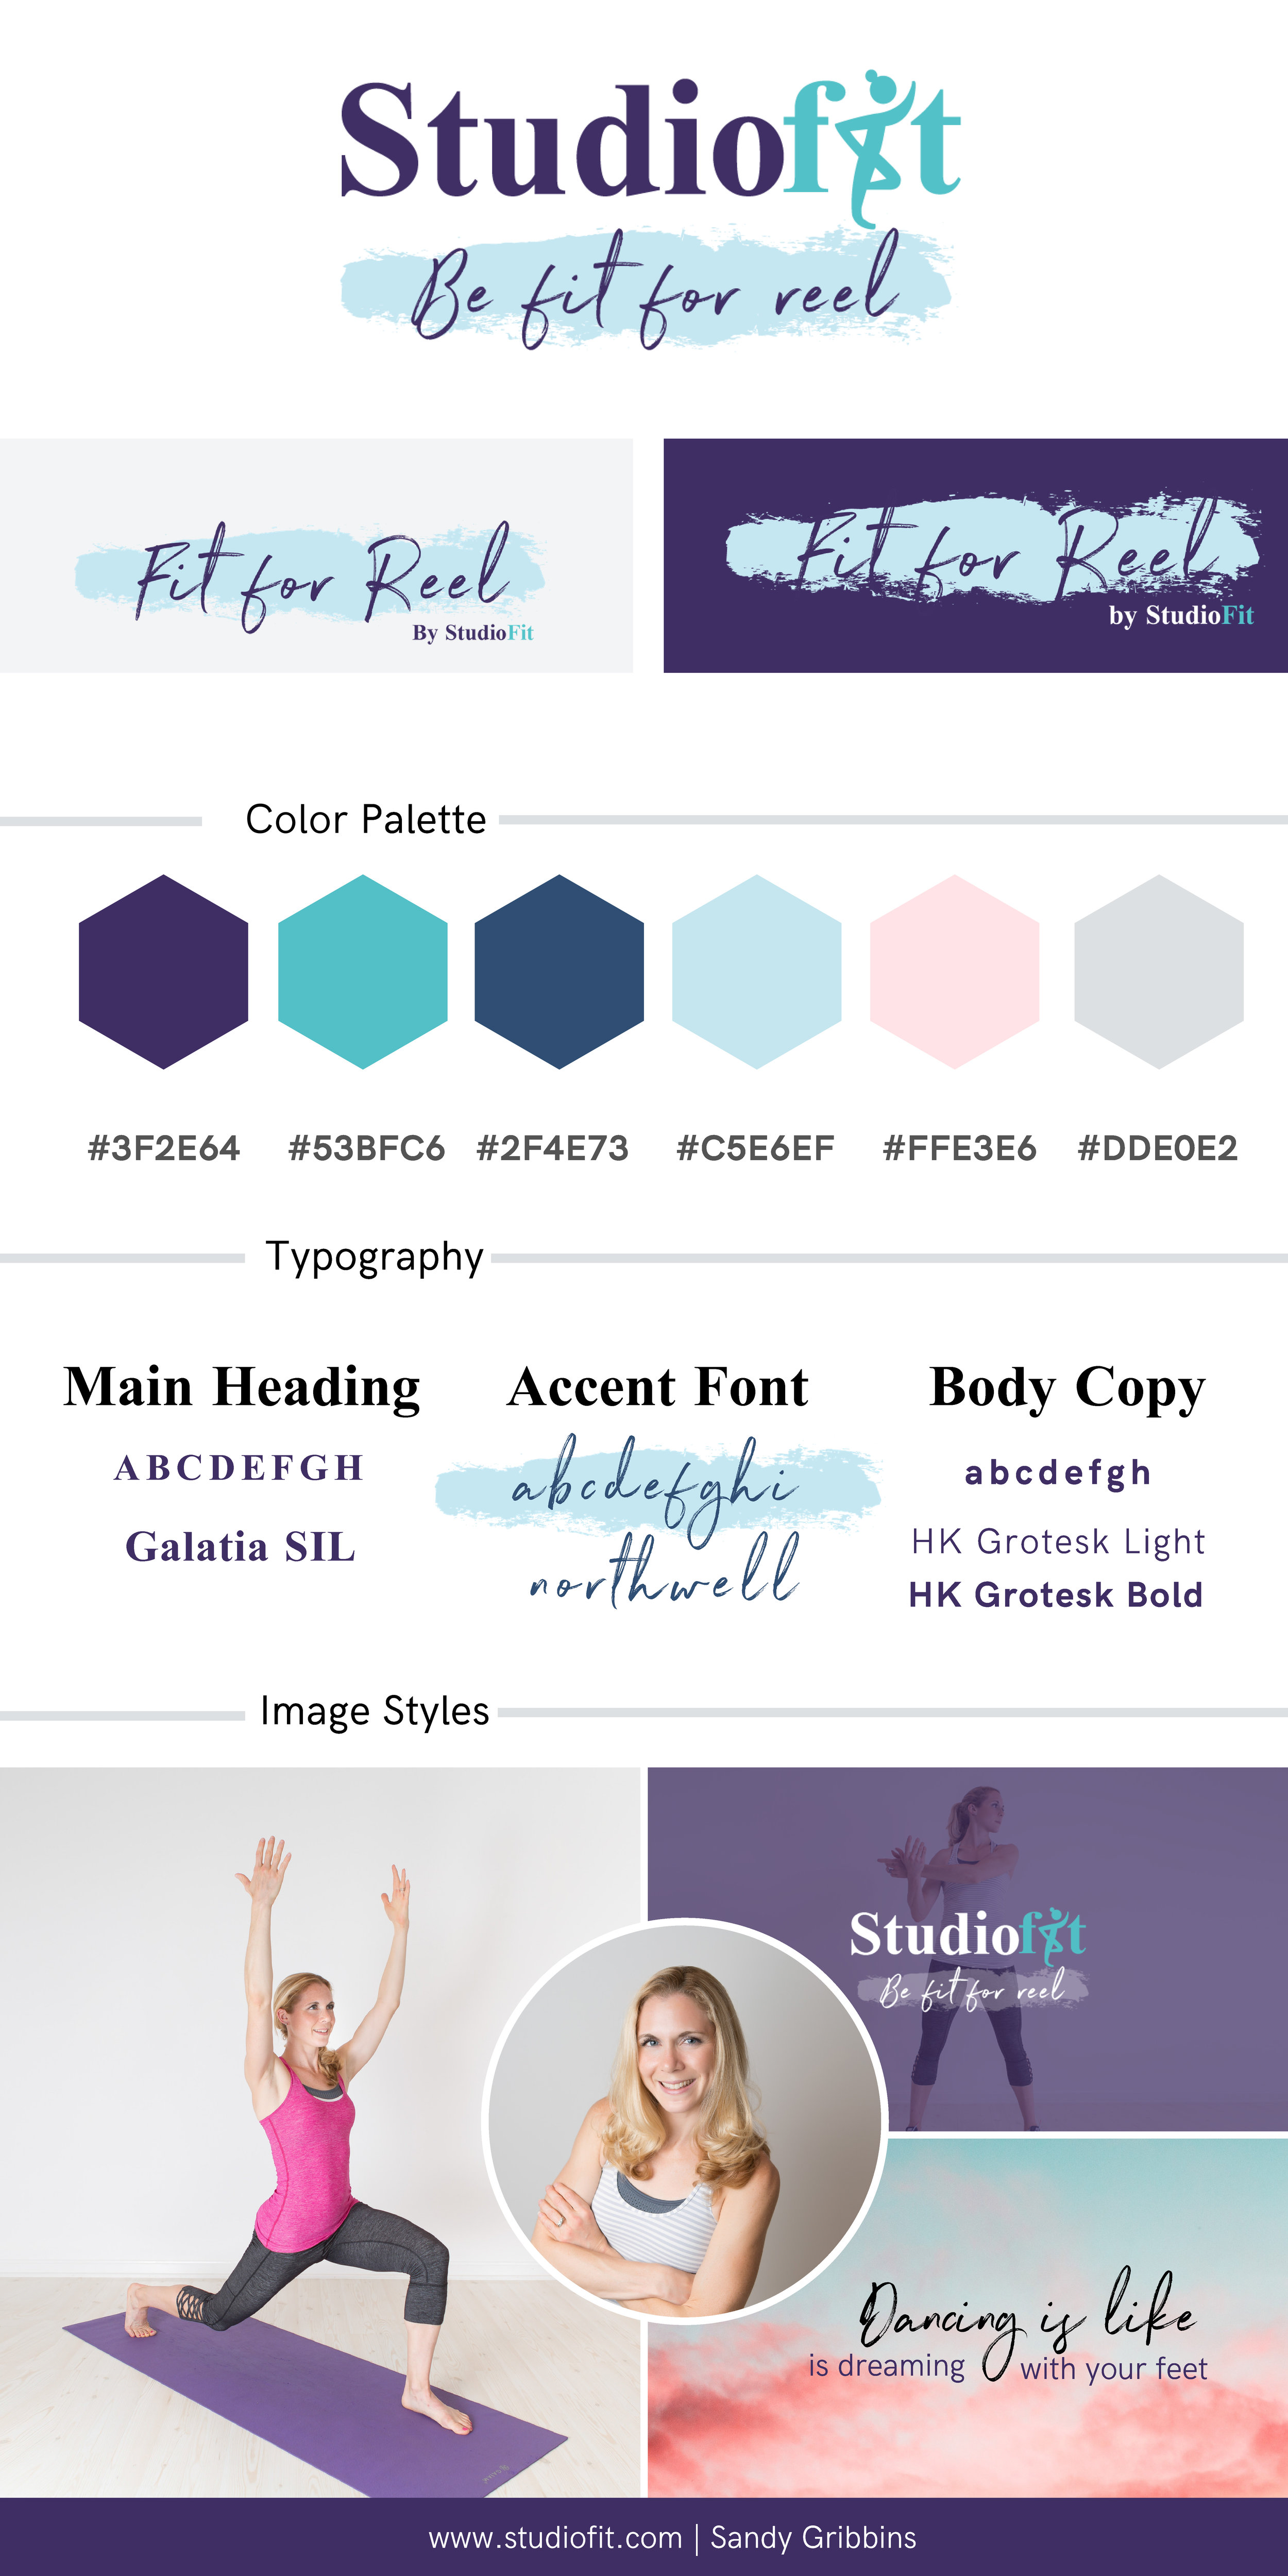 One-page Style Guide